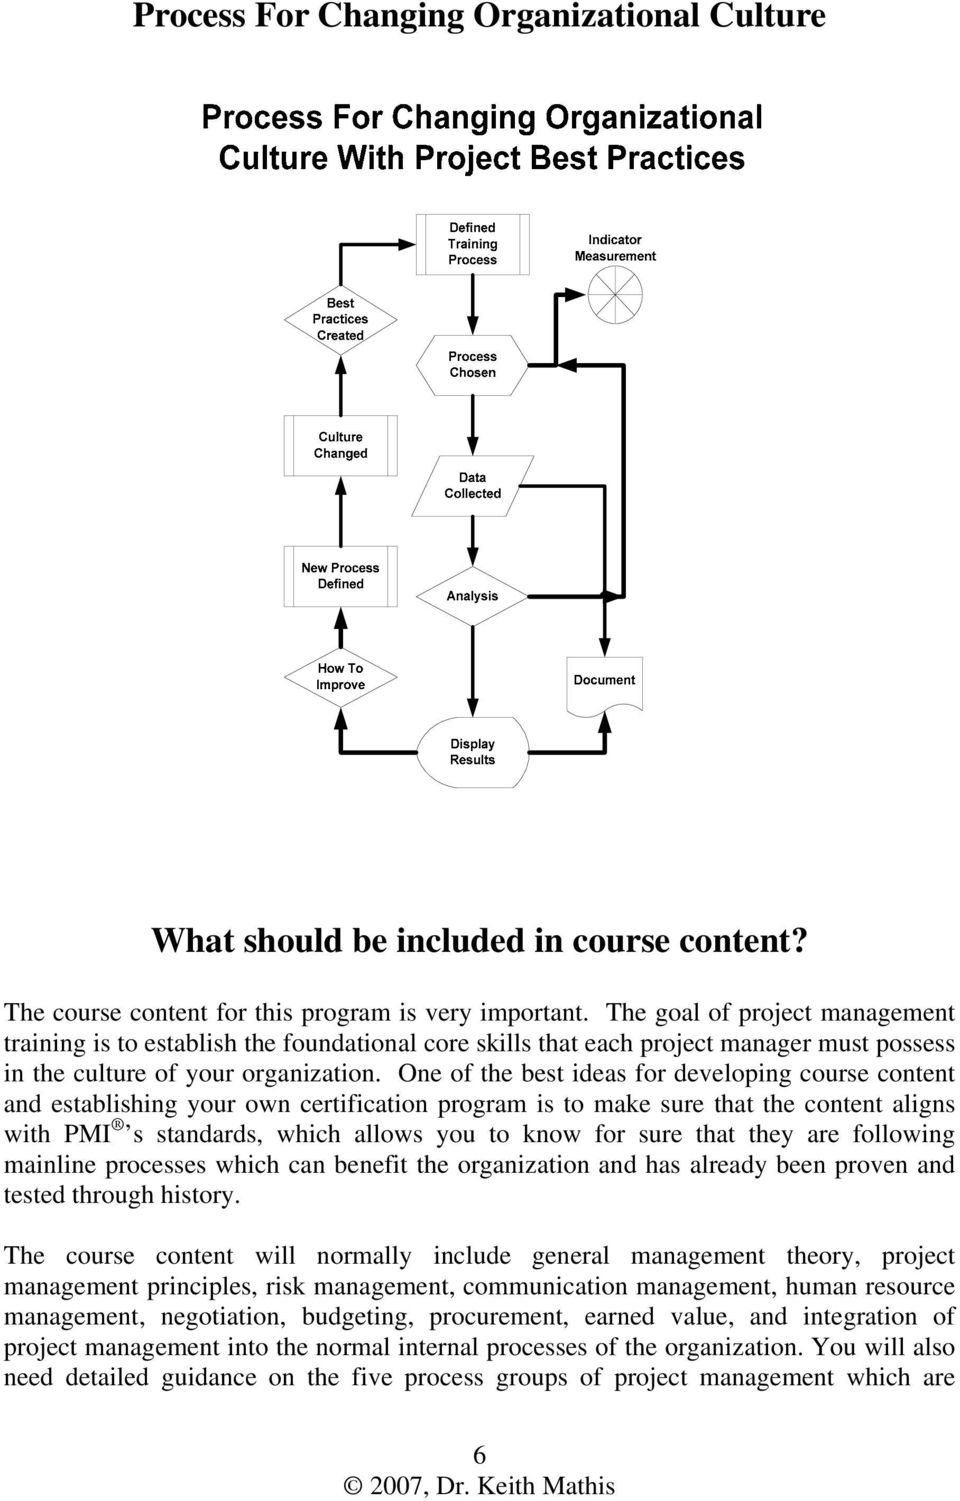 One of the best ideas for developing course content and establishing your own certification program is to make sure that the content aligns with PMI s standards, which allows you to know for sure